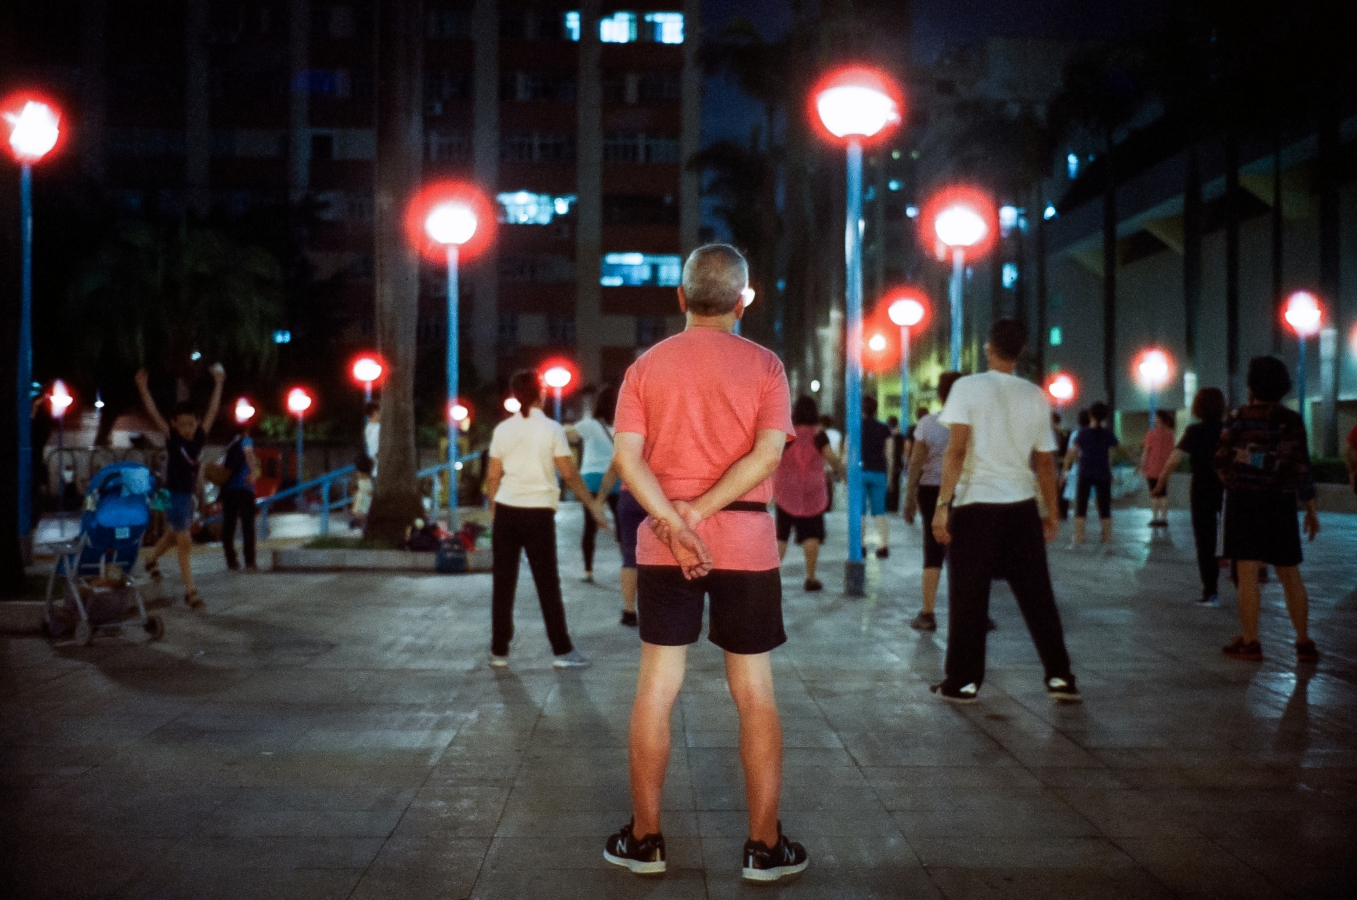 bigheadtaco com: Why I Shoot Film: Hong Kong Edition